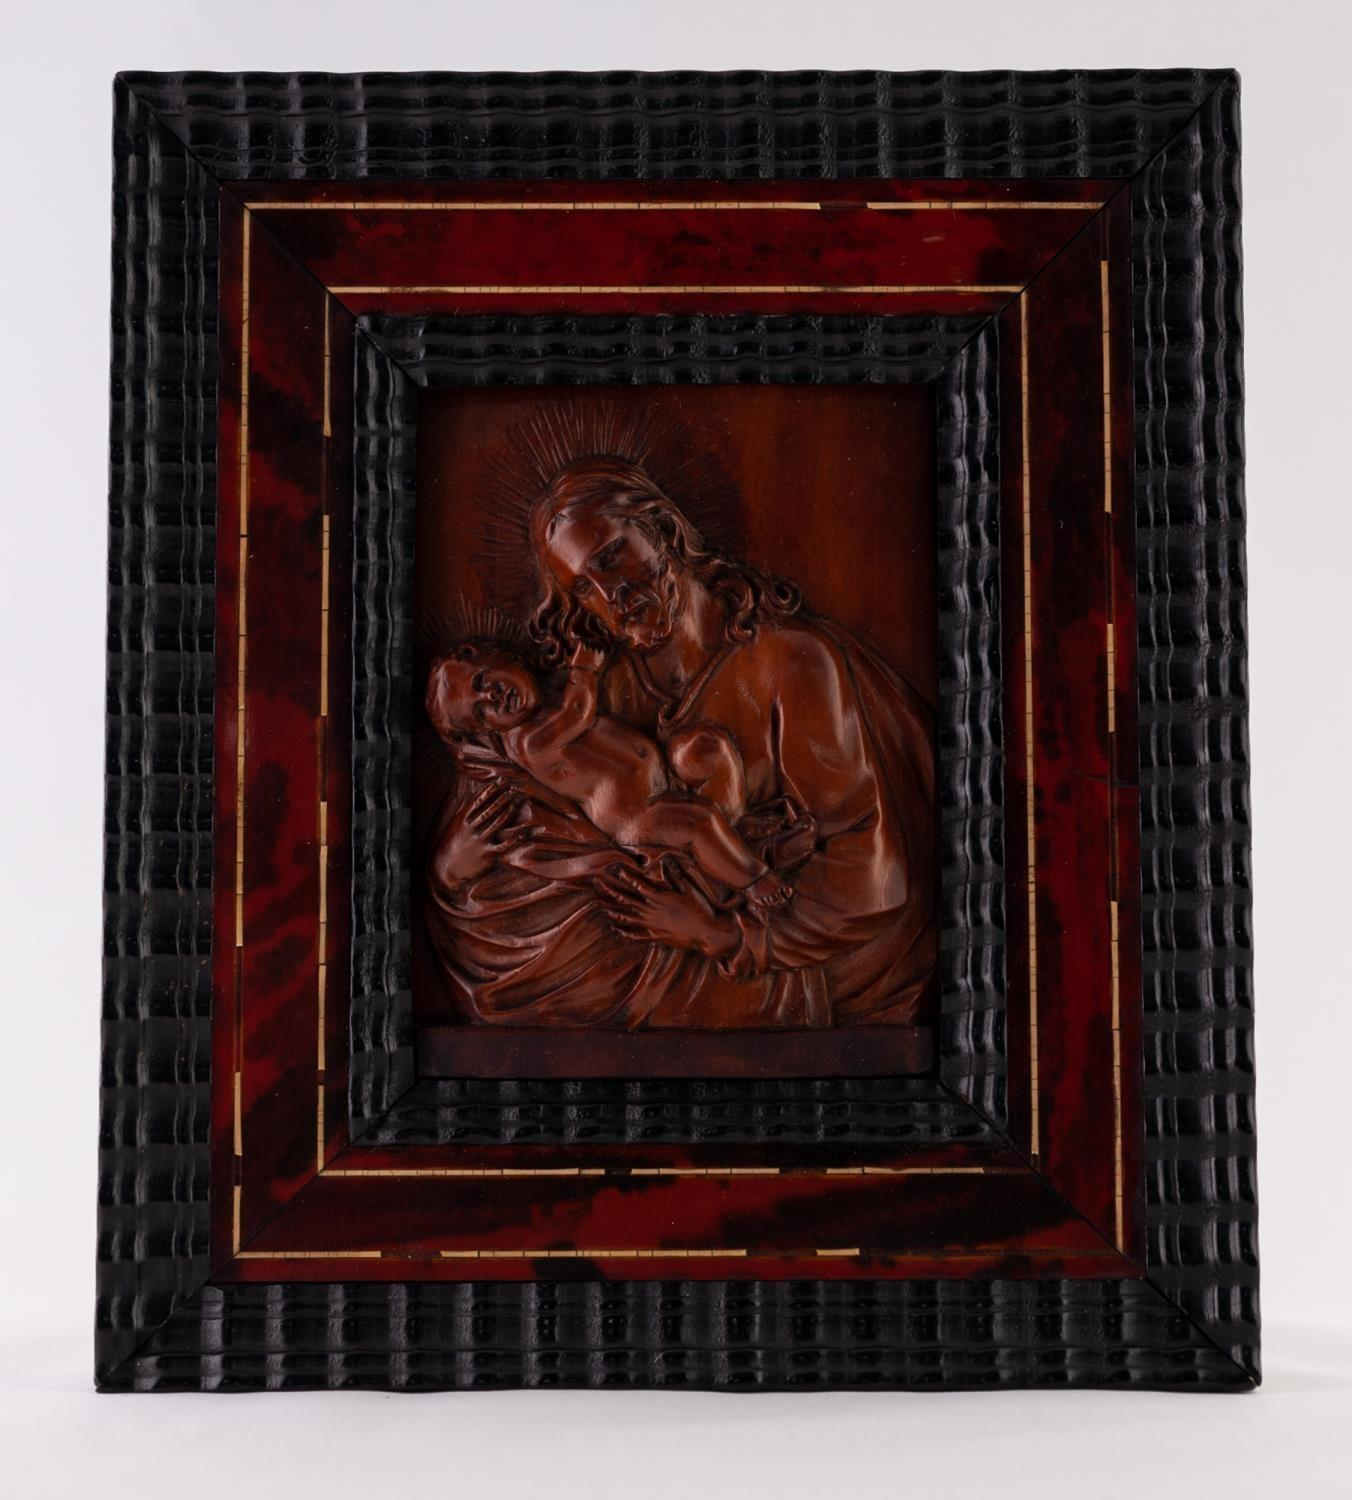 Lot 56 - AN 18TH CENTURY FLEMISH CARVED FRUITWOOD RELIEF OF JOSEPH CRADLING THE CHRIST CHILD, contained